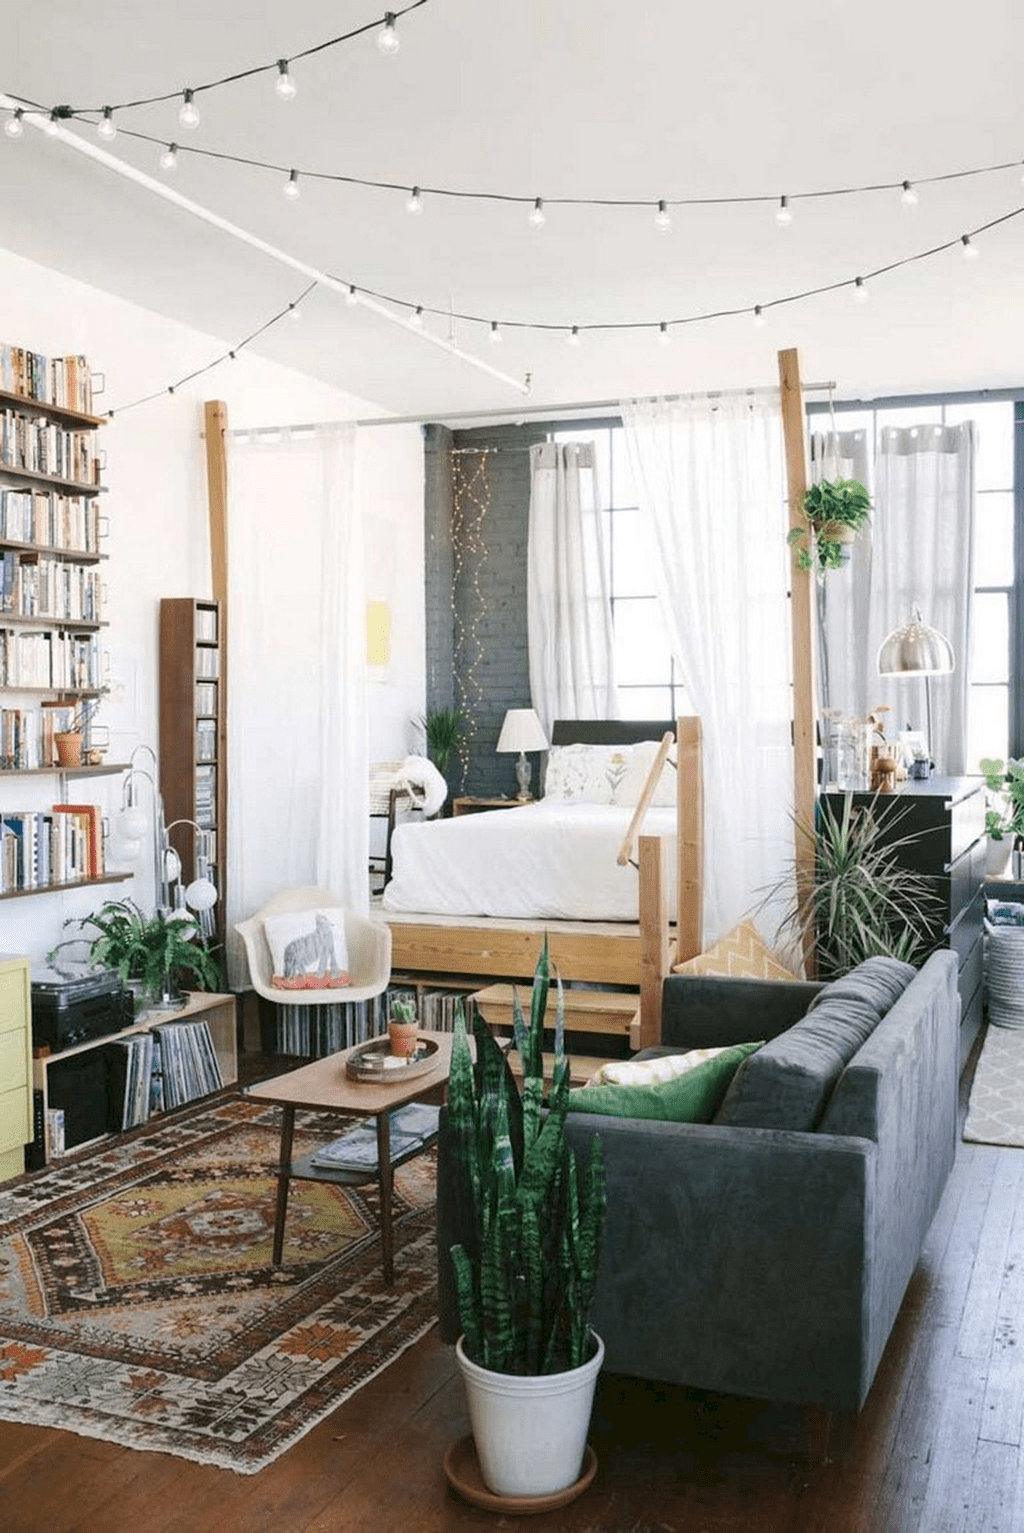 Cool Studio Apartment Ideas You Never Seen Before 30